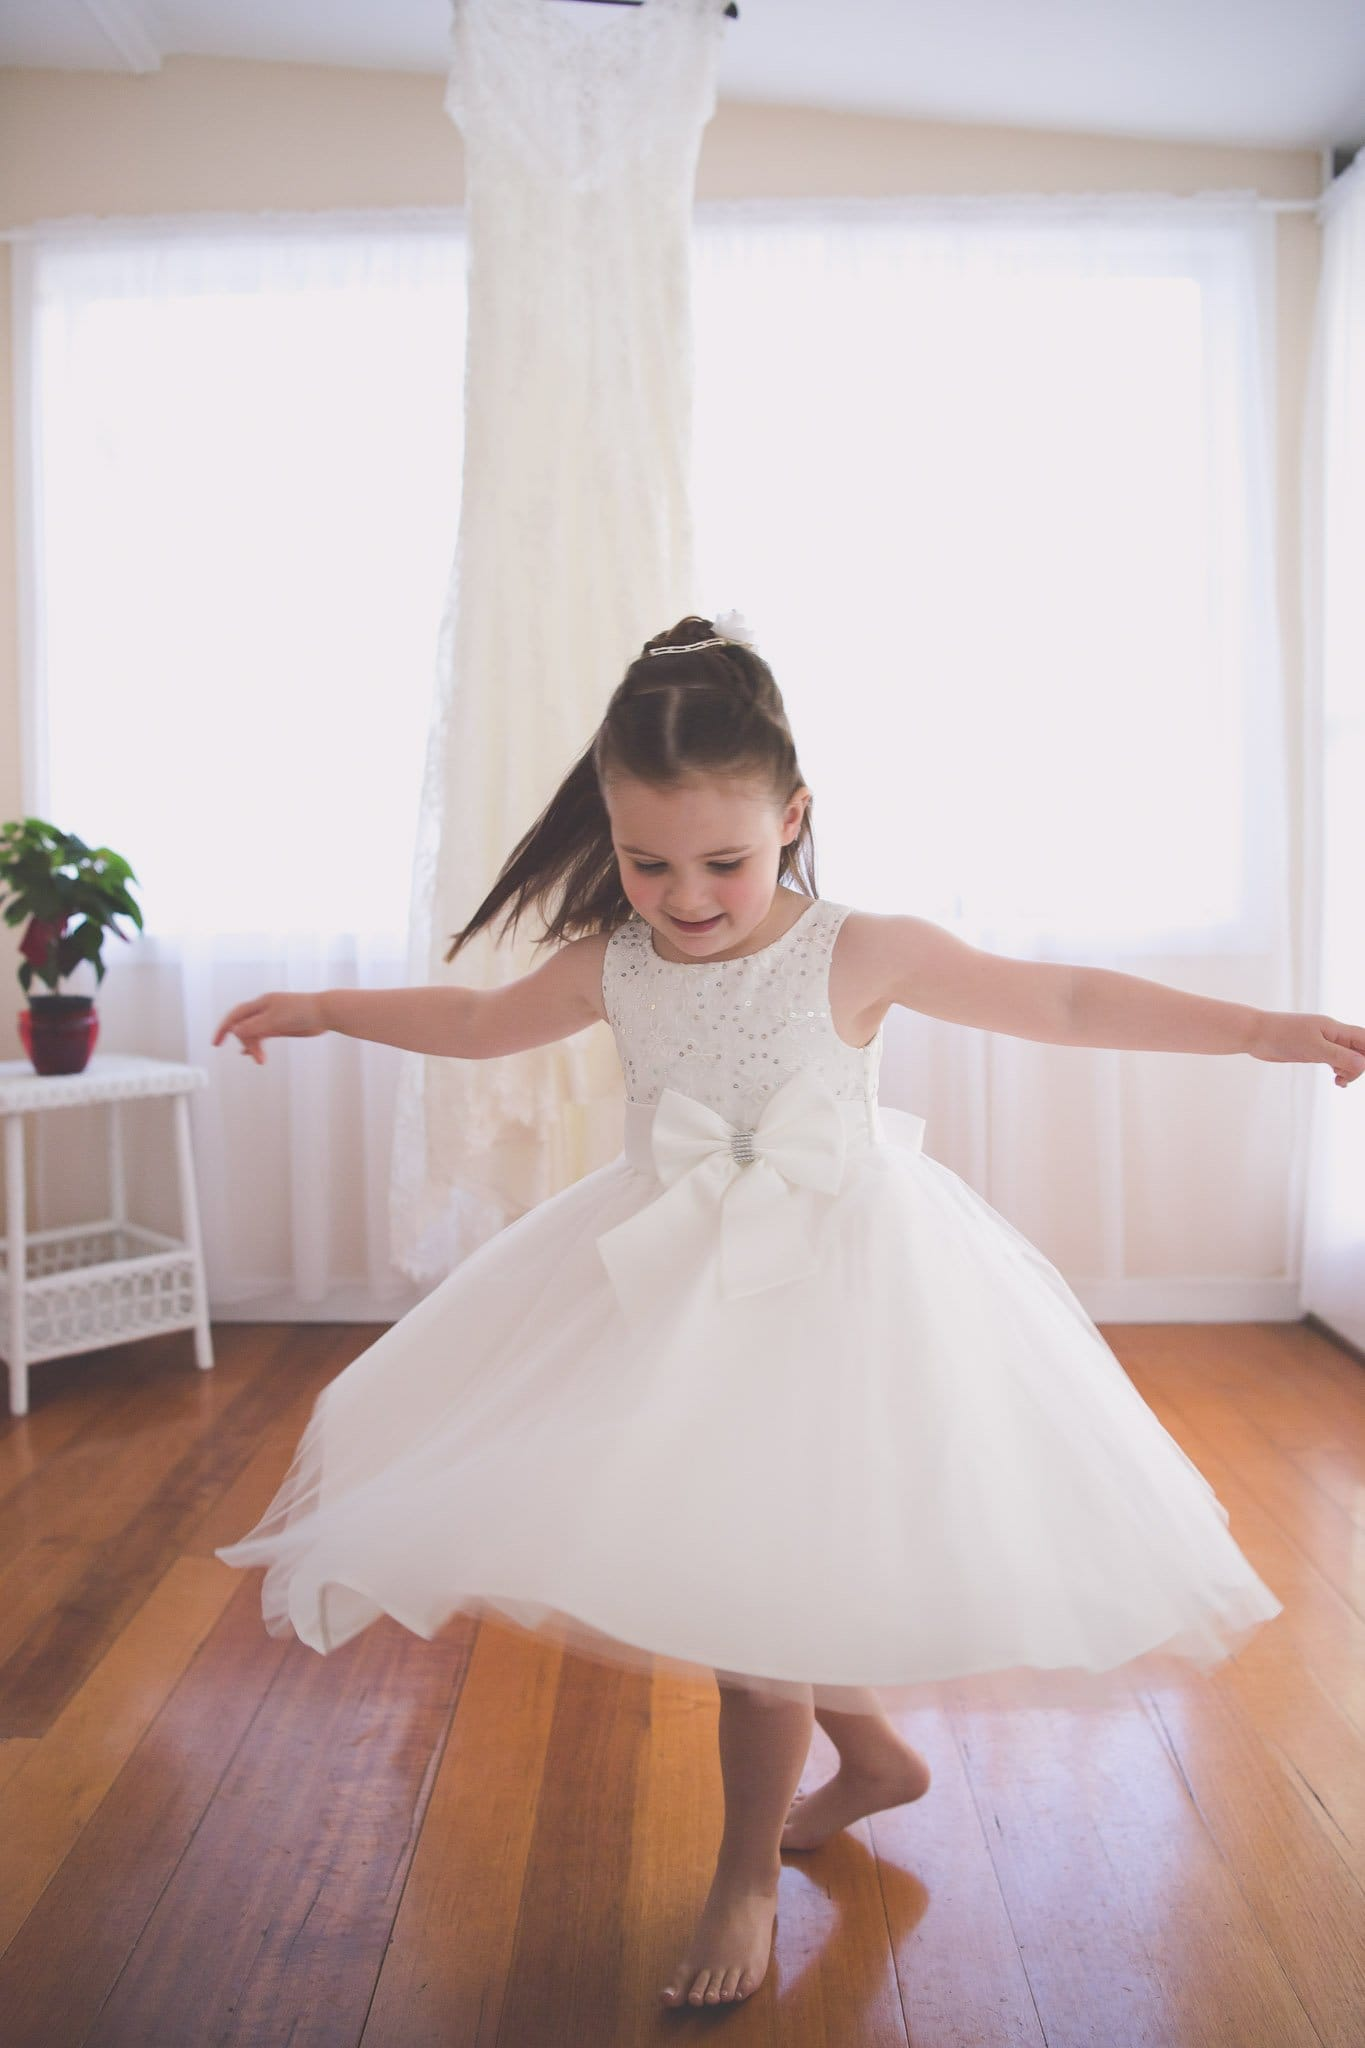 Melbourne wedding photography of a flower girl twirling in front of a wedding dress